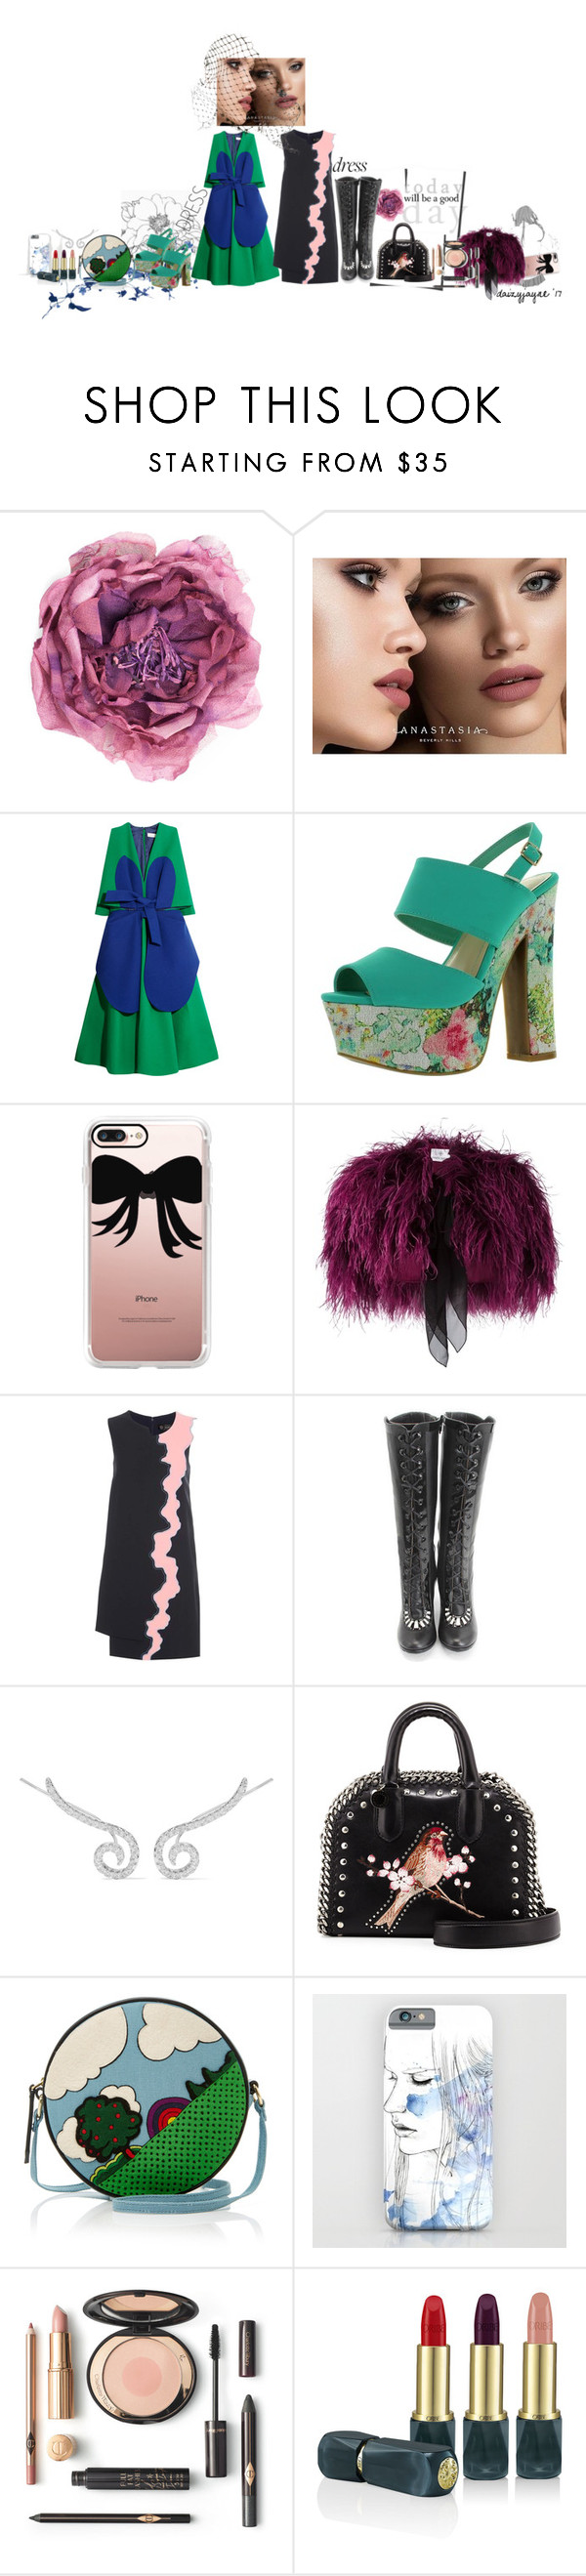 """""""two tone dresses"""" by daizyjayne ❤ liked on Polyvore featuring Gucci, Anastasia Beverly Hills, Delpozo, Casetify, Daizy Shely, Versace, John Fluevog, Kenneth Jay Lane, STELLA McCARTNEY and Olympia Le-Tan"""